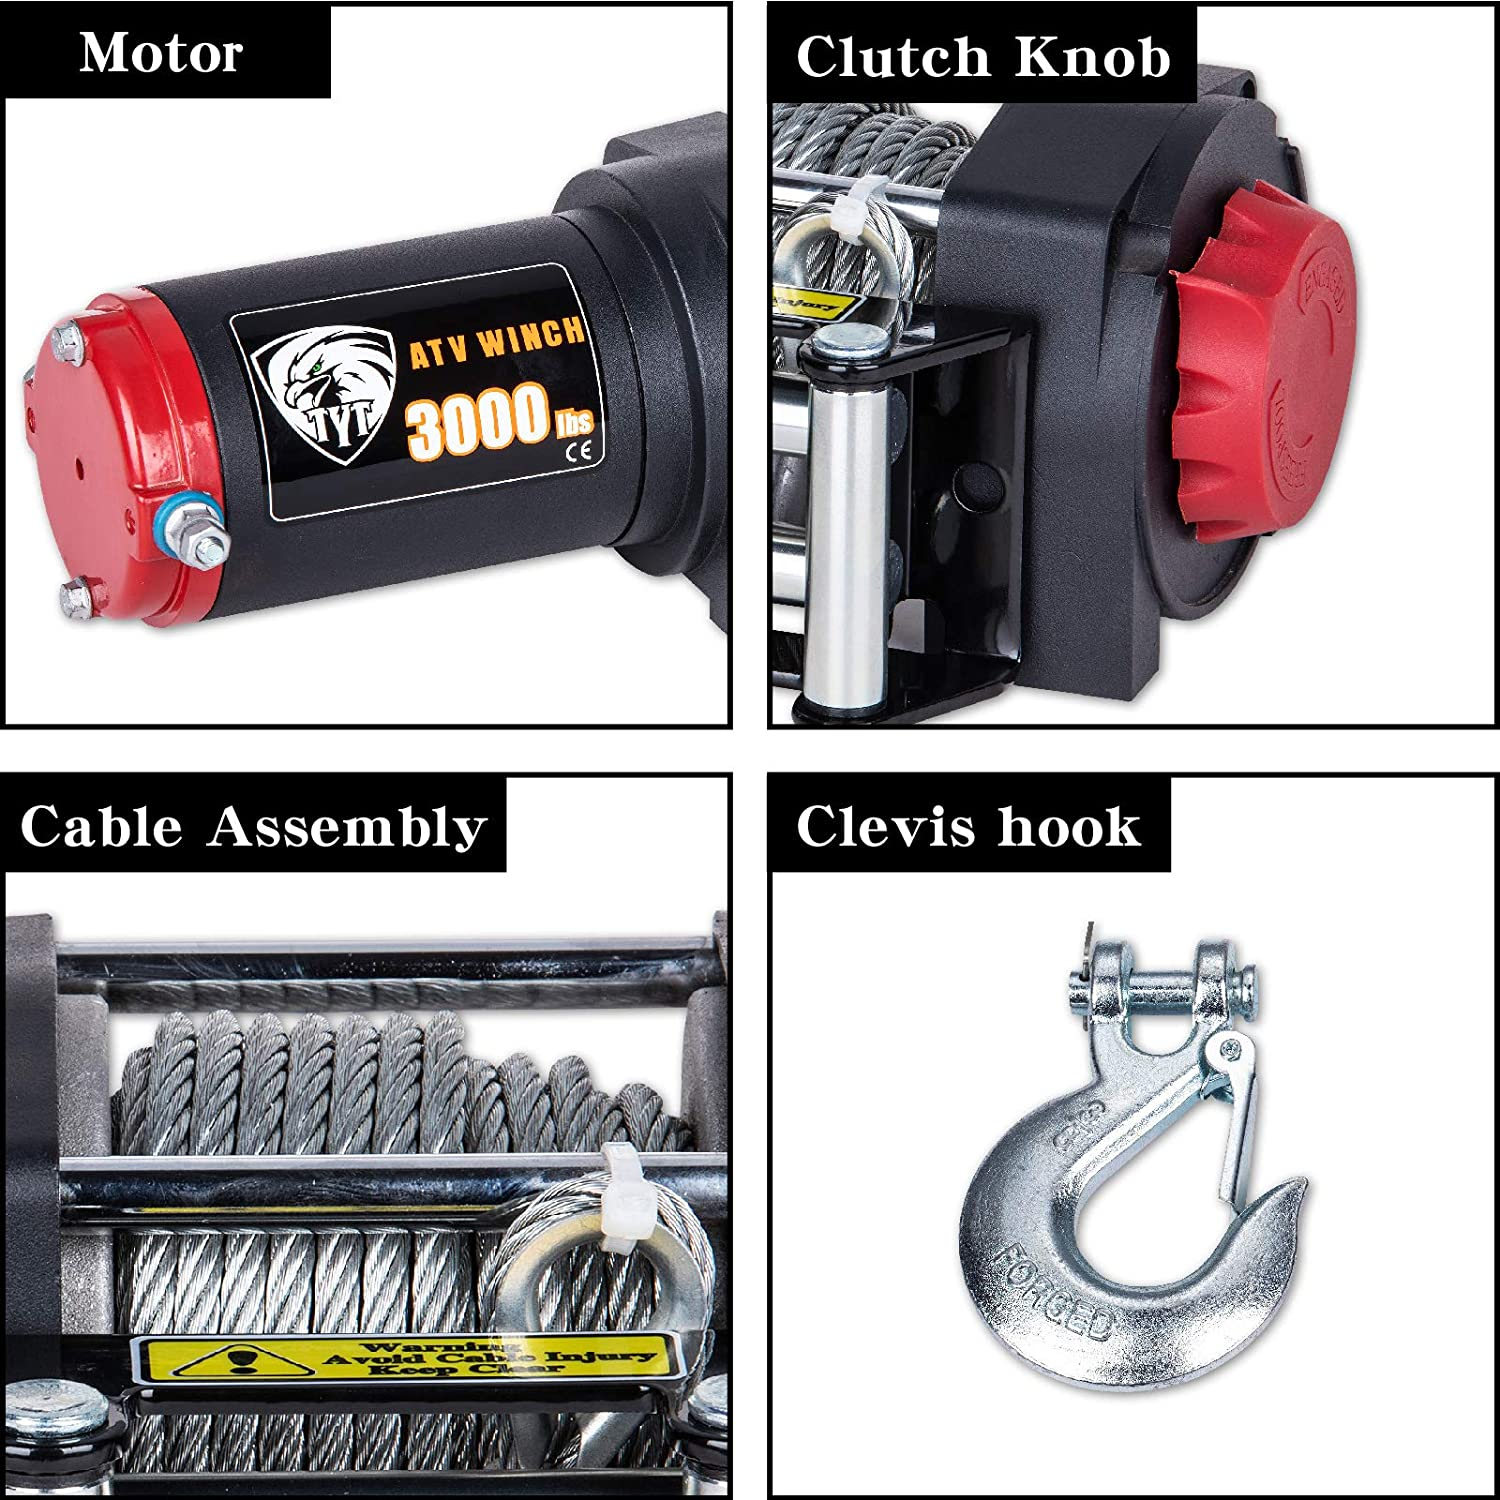 3000lbs Steel Cable TYT New 3000 lb with Wireless Remote and Clevis Hook Waterproof IP67 Winch 12V Electric Winch with 49ft Steel Cable ATV//UTV Electric Winch Kit